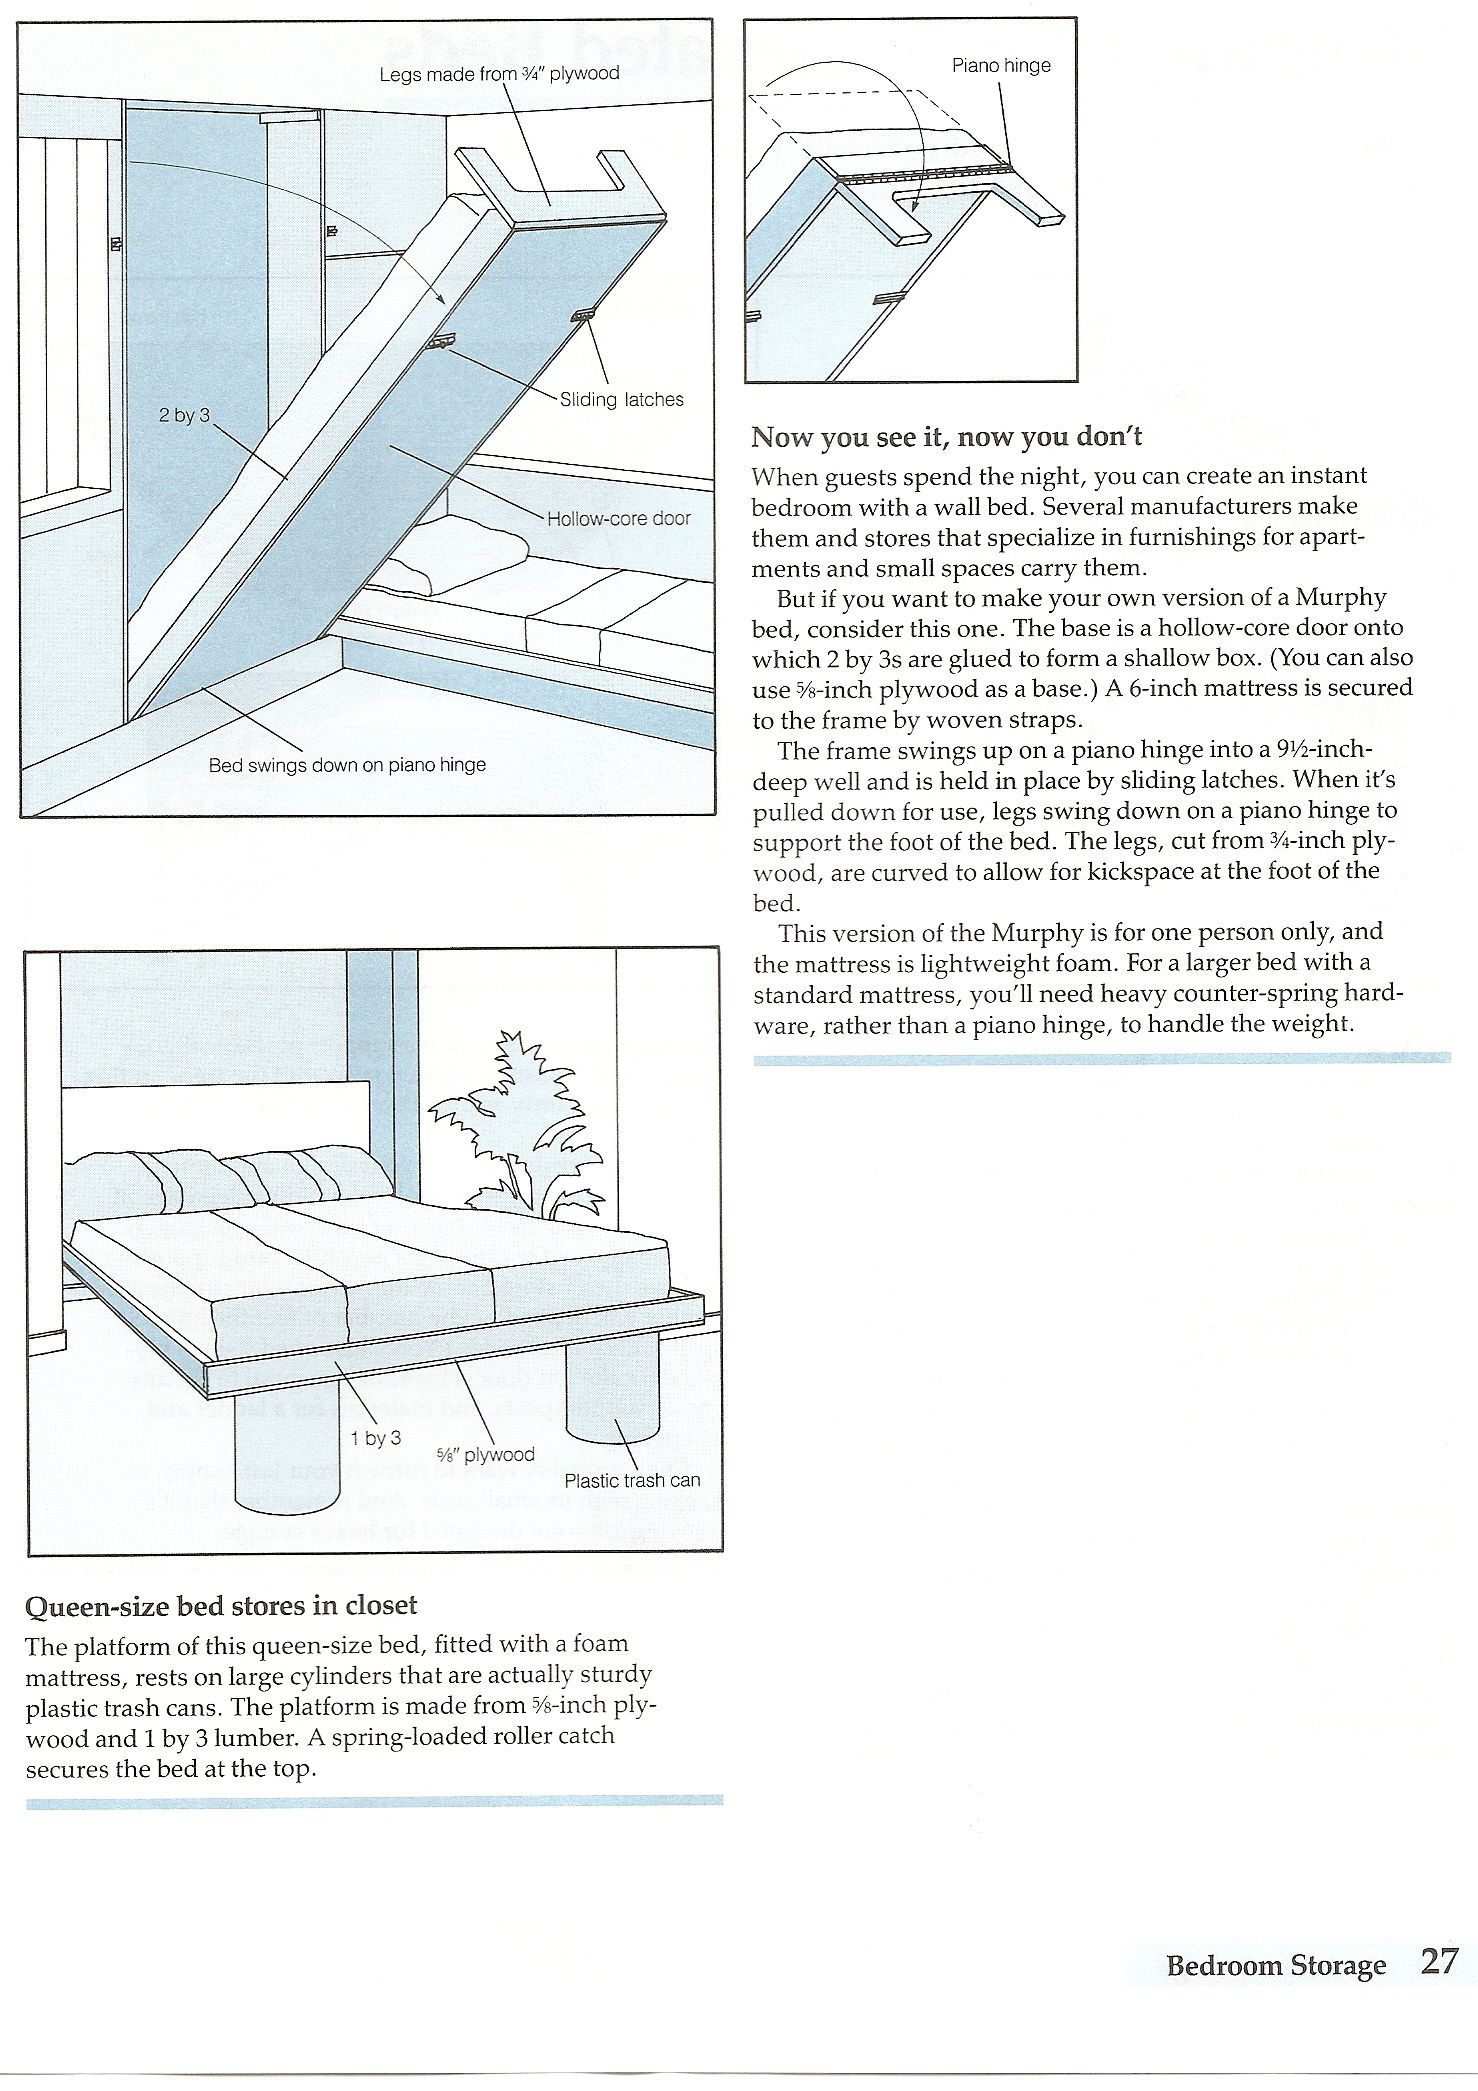 murphy bed in closet dad could totally do this now to figure out how to work a trundle or. Black Bedroom Furniture Sets. Home Design Ideas